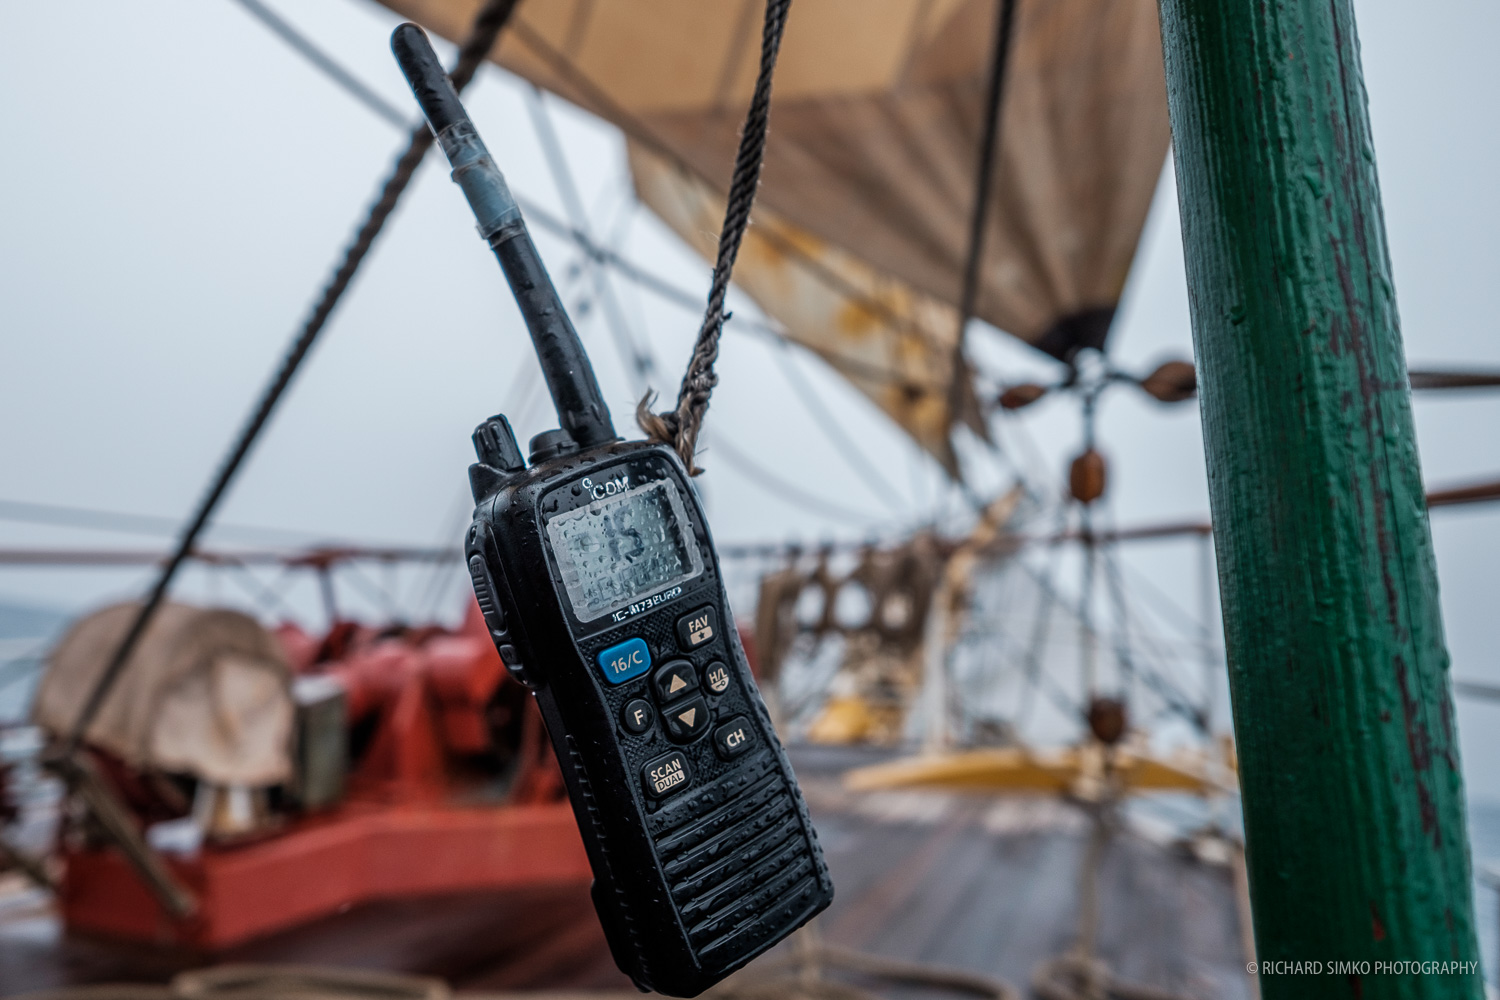 Walkie talkie we used on lookout shifts to report to wheelhouse. Any obstacles we spotted including ships, icebergs, floating containers, objects that may damage the ships have to be reported to the captain or 1st mate. Some of the smaller ones may not be picked up by radar, yet they are big enough to jeopardise the safety of the ship and crew.